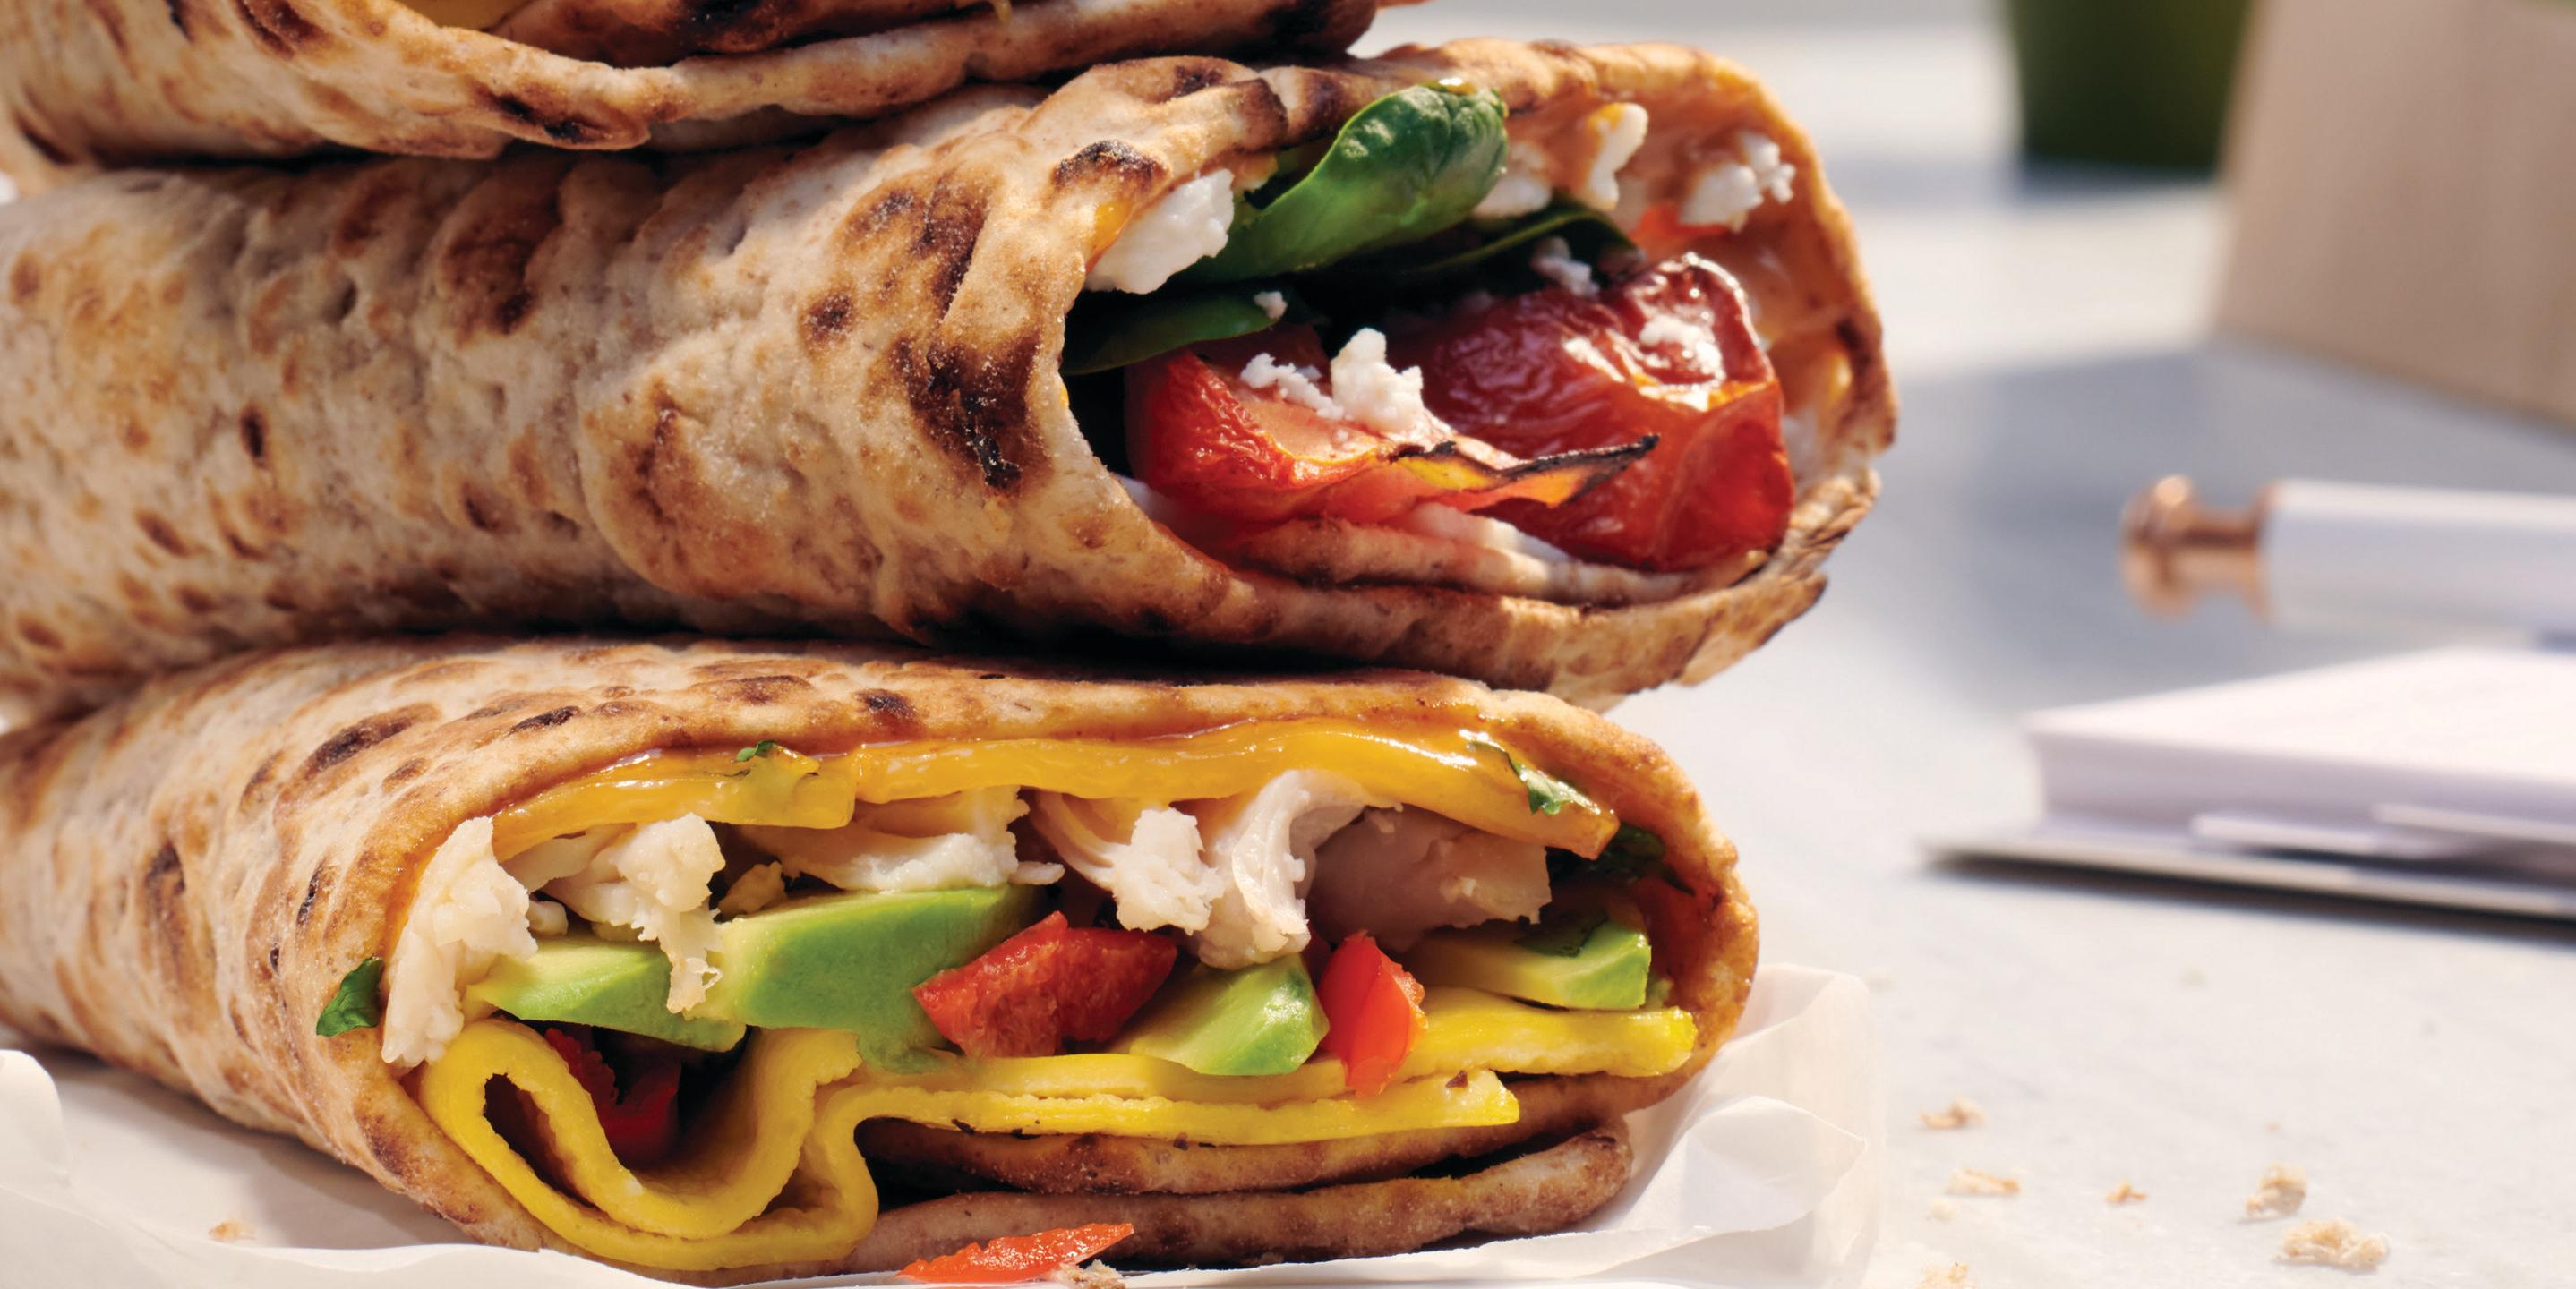 Move Over Bread-Sliced Bagels, Panera Added Three New Breakfast Wraps To The Menu